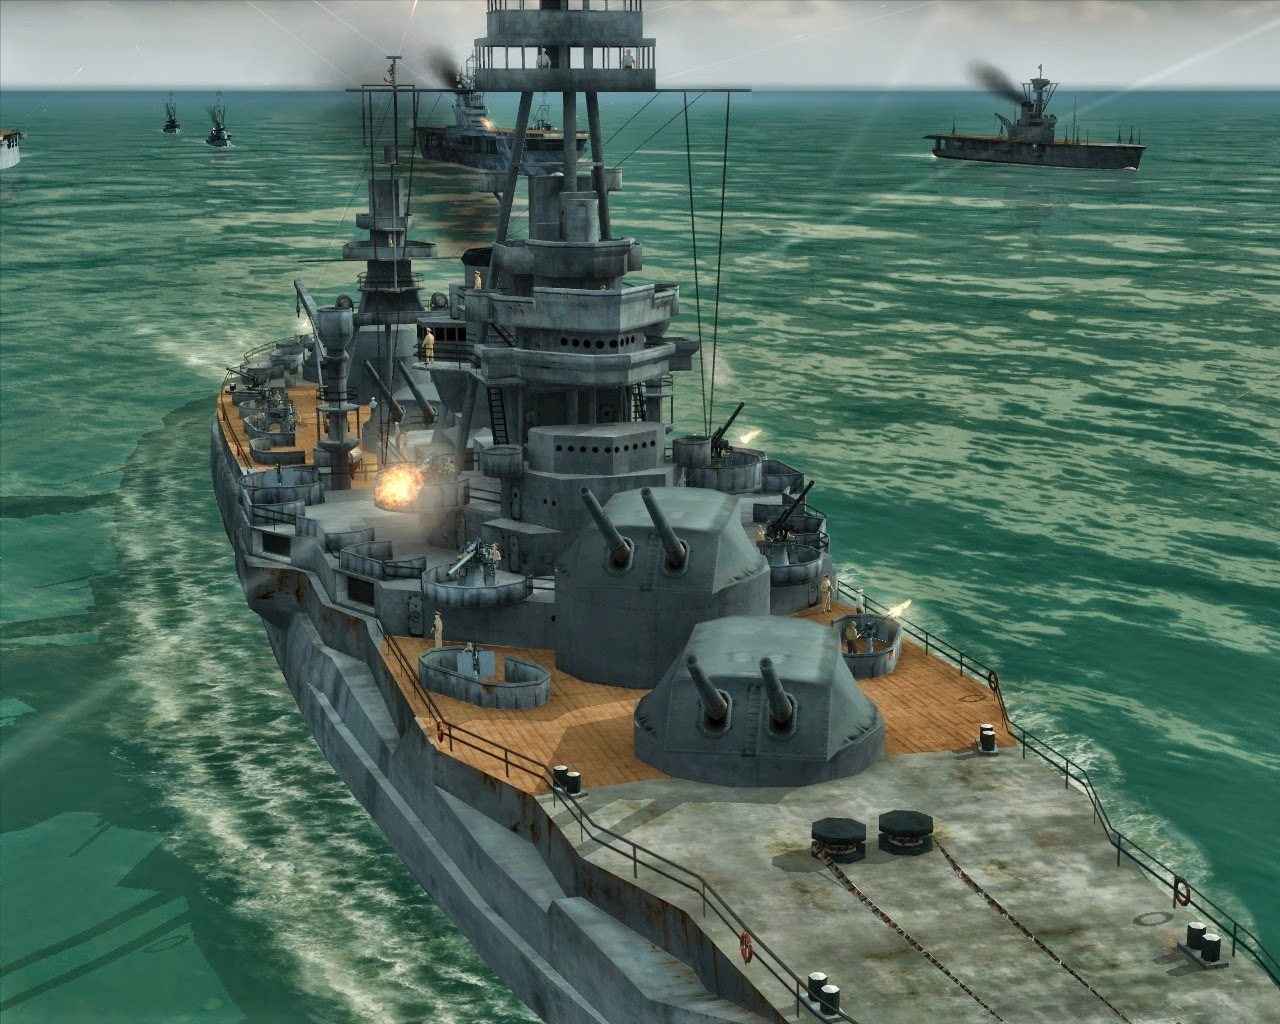 Ship Games For Xbox 360 : Best naval games xbox « the battleship